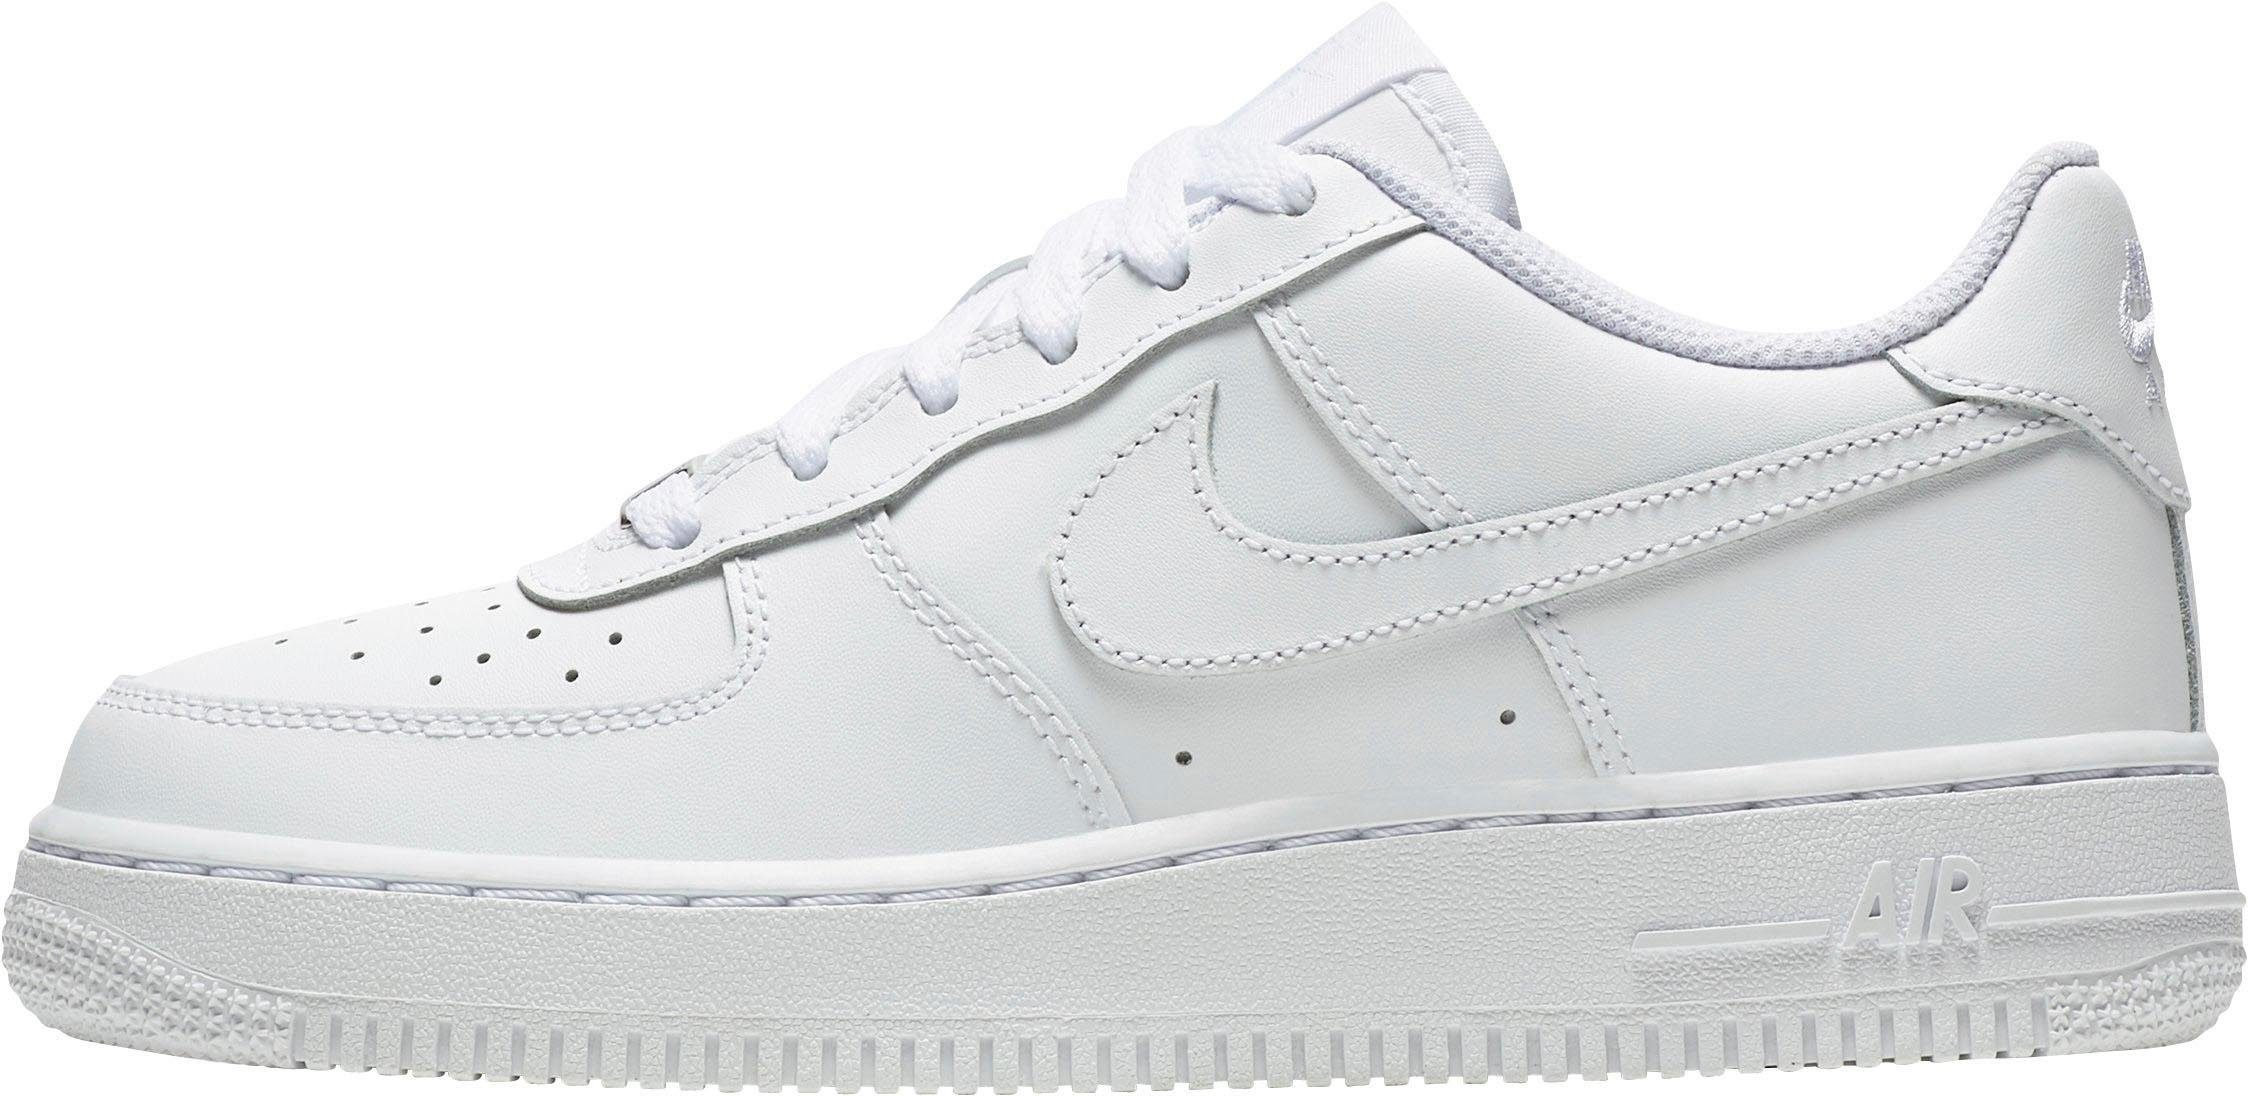 Nike to Release Two Ribbon Wrapped Air Force 1 Lows for